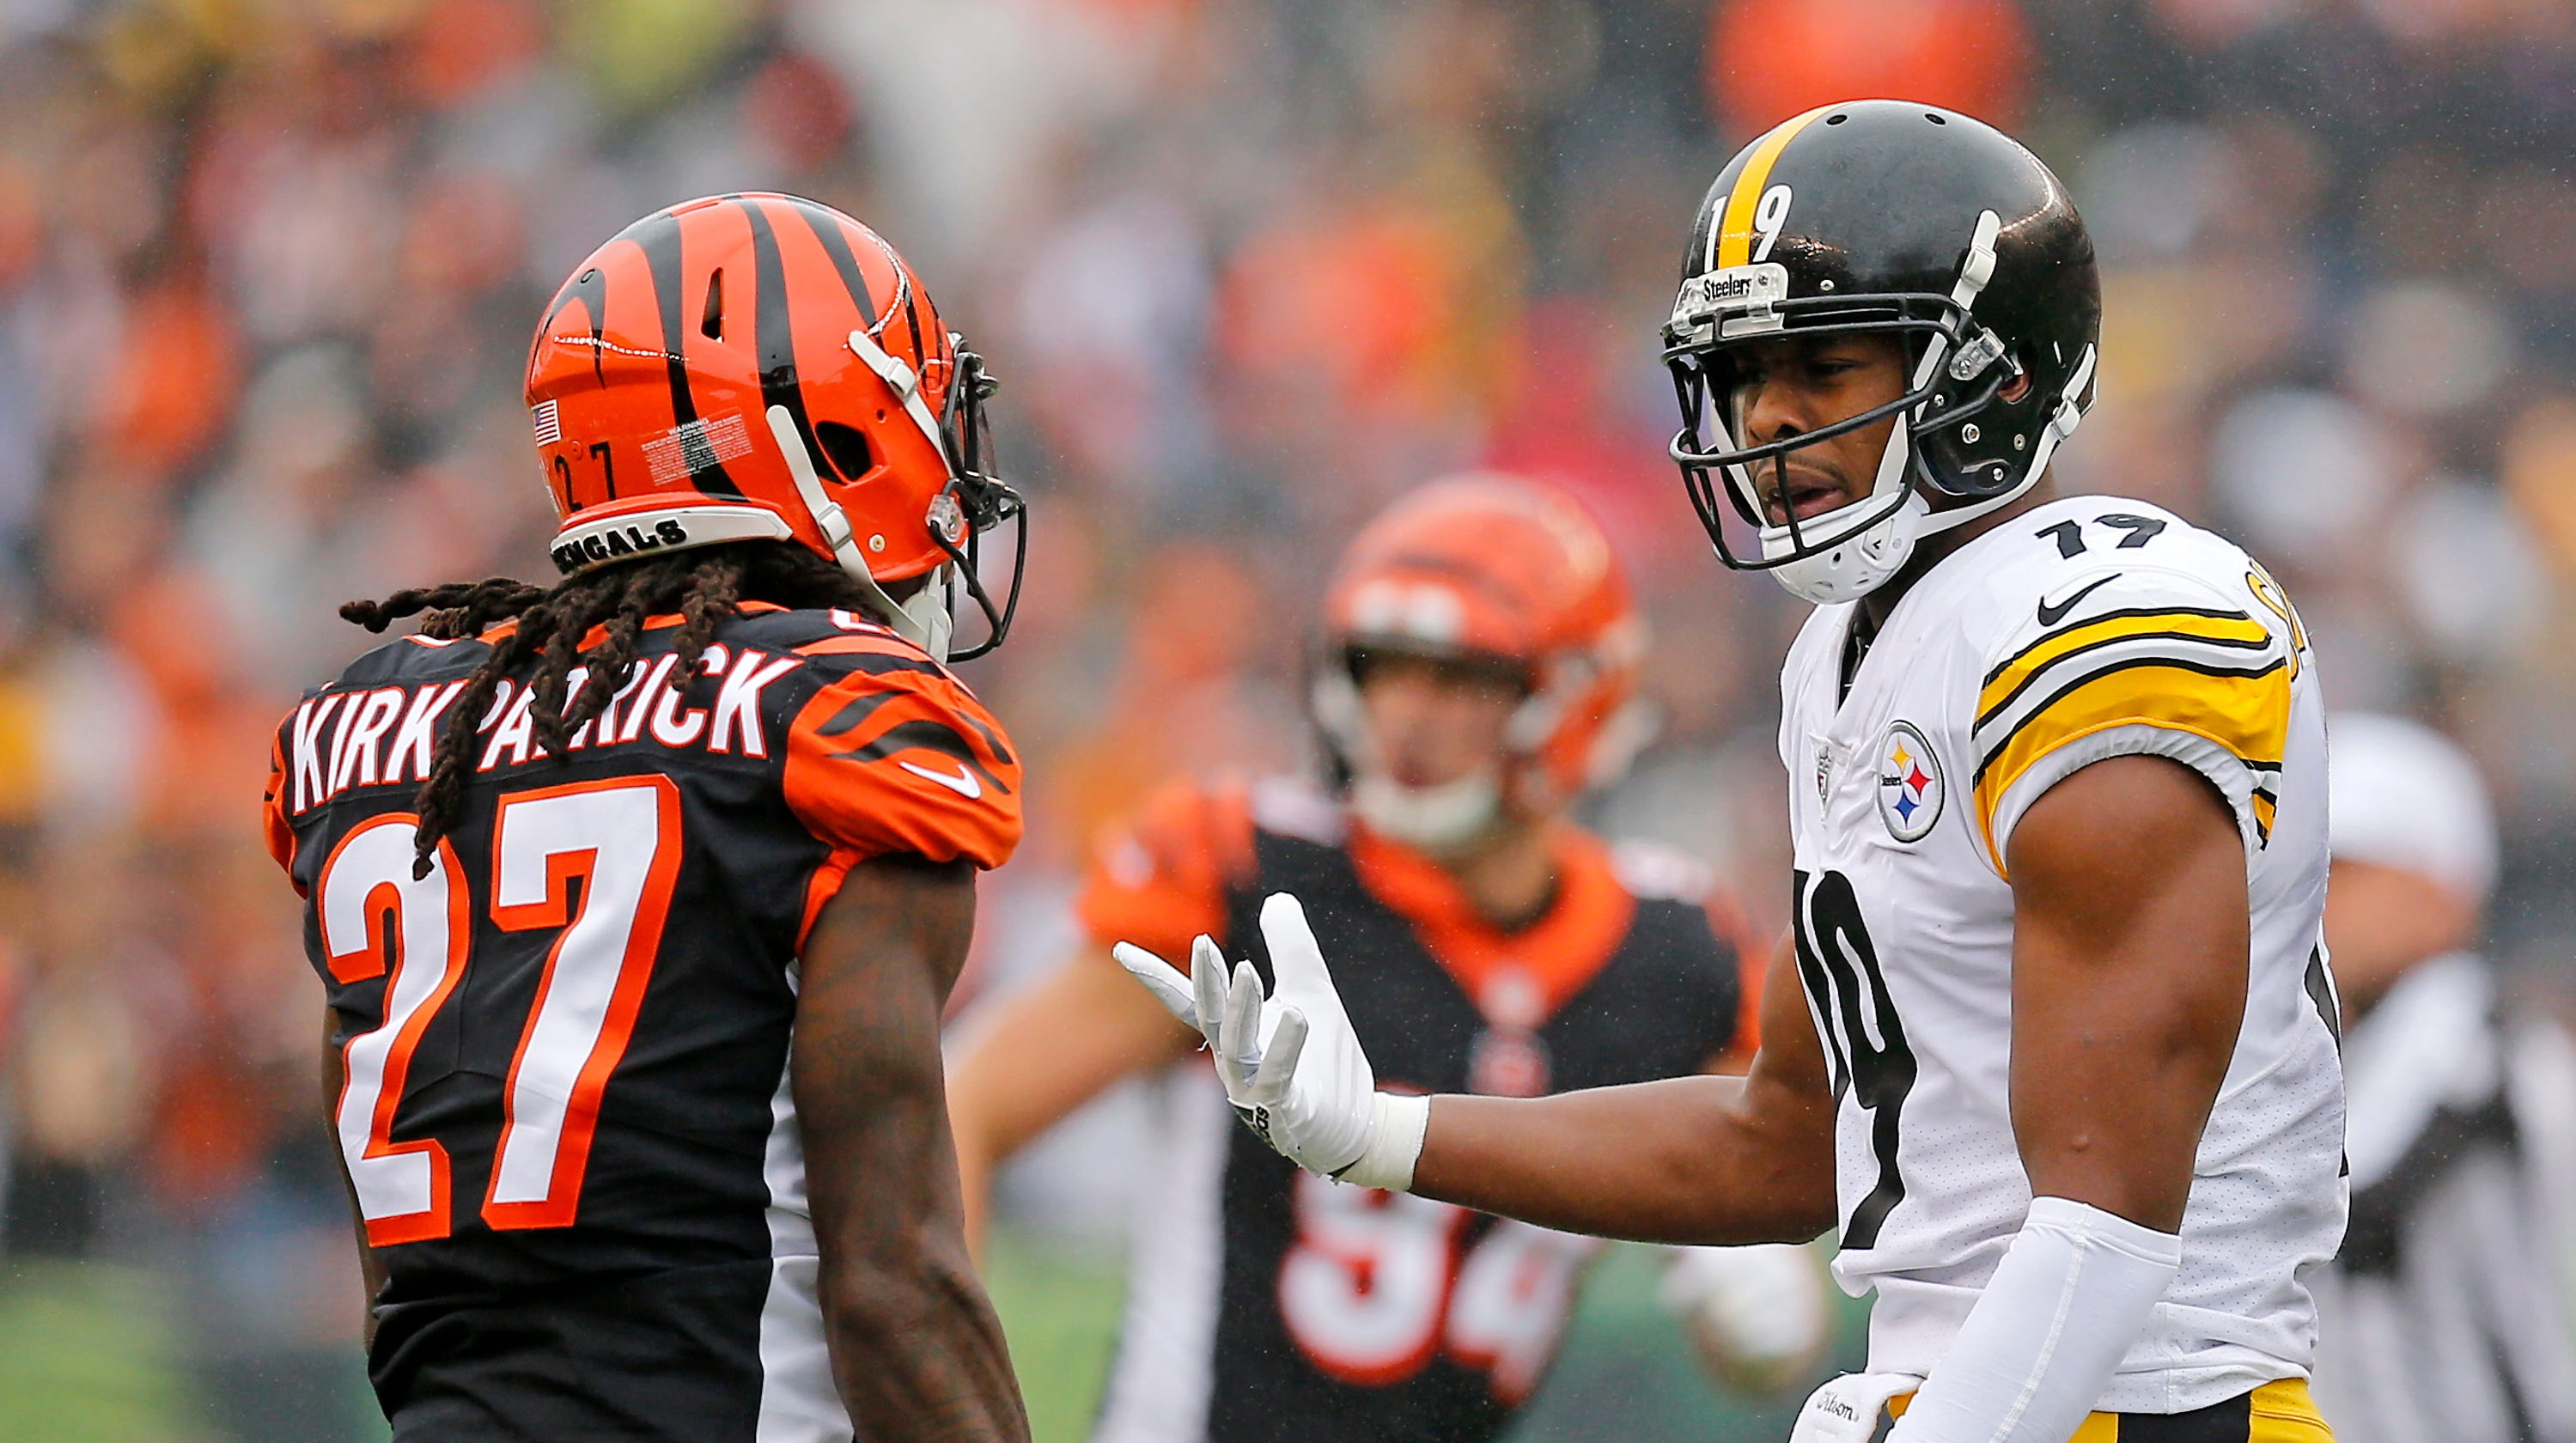 520bef5a1 Steelers  JuJu Smith-Schuster  Bengals  were all making threats at me